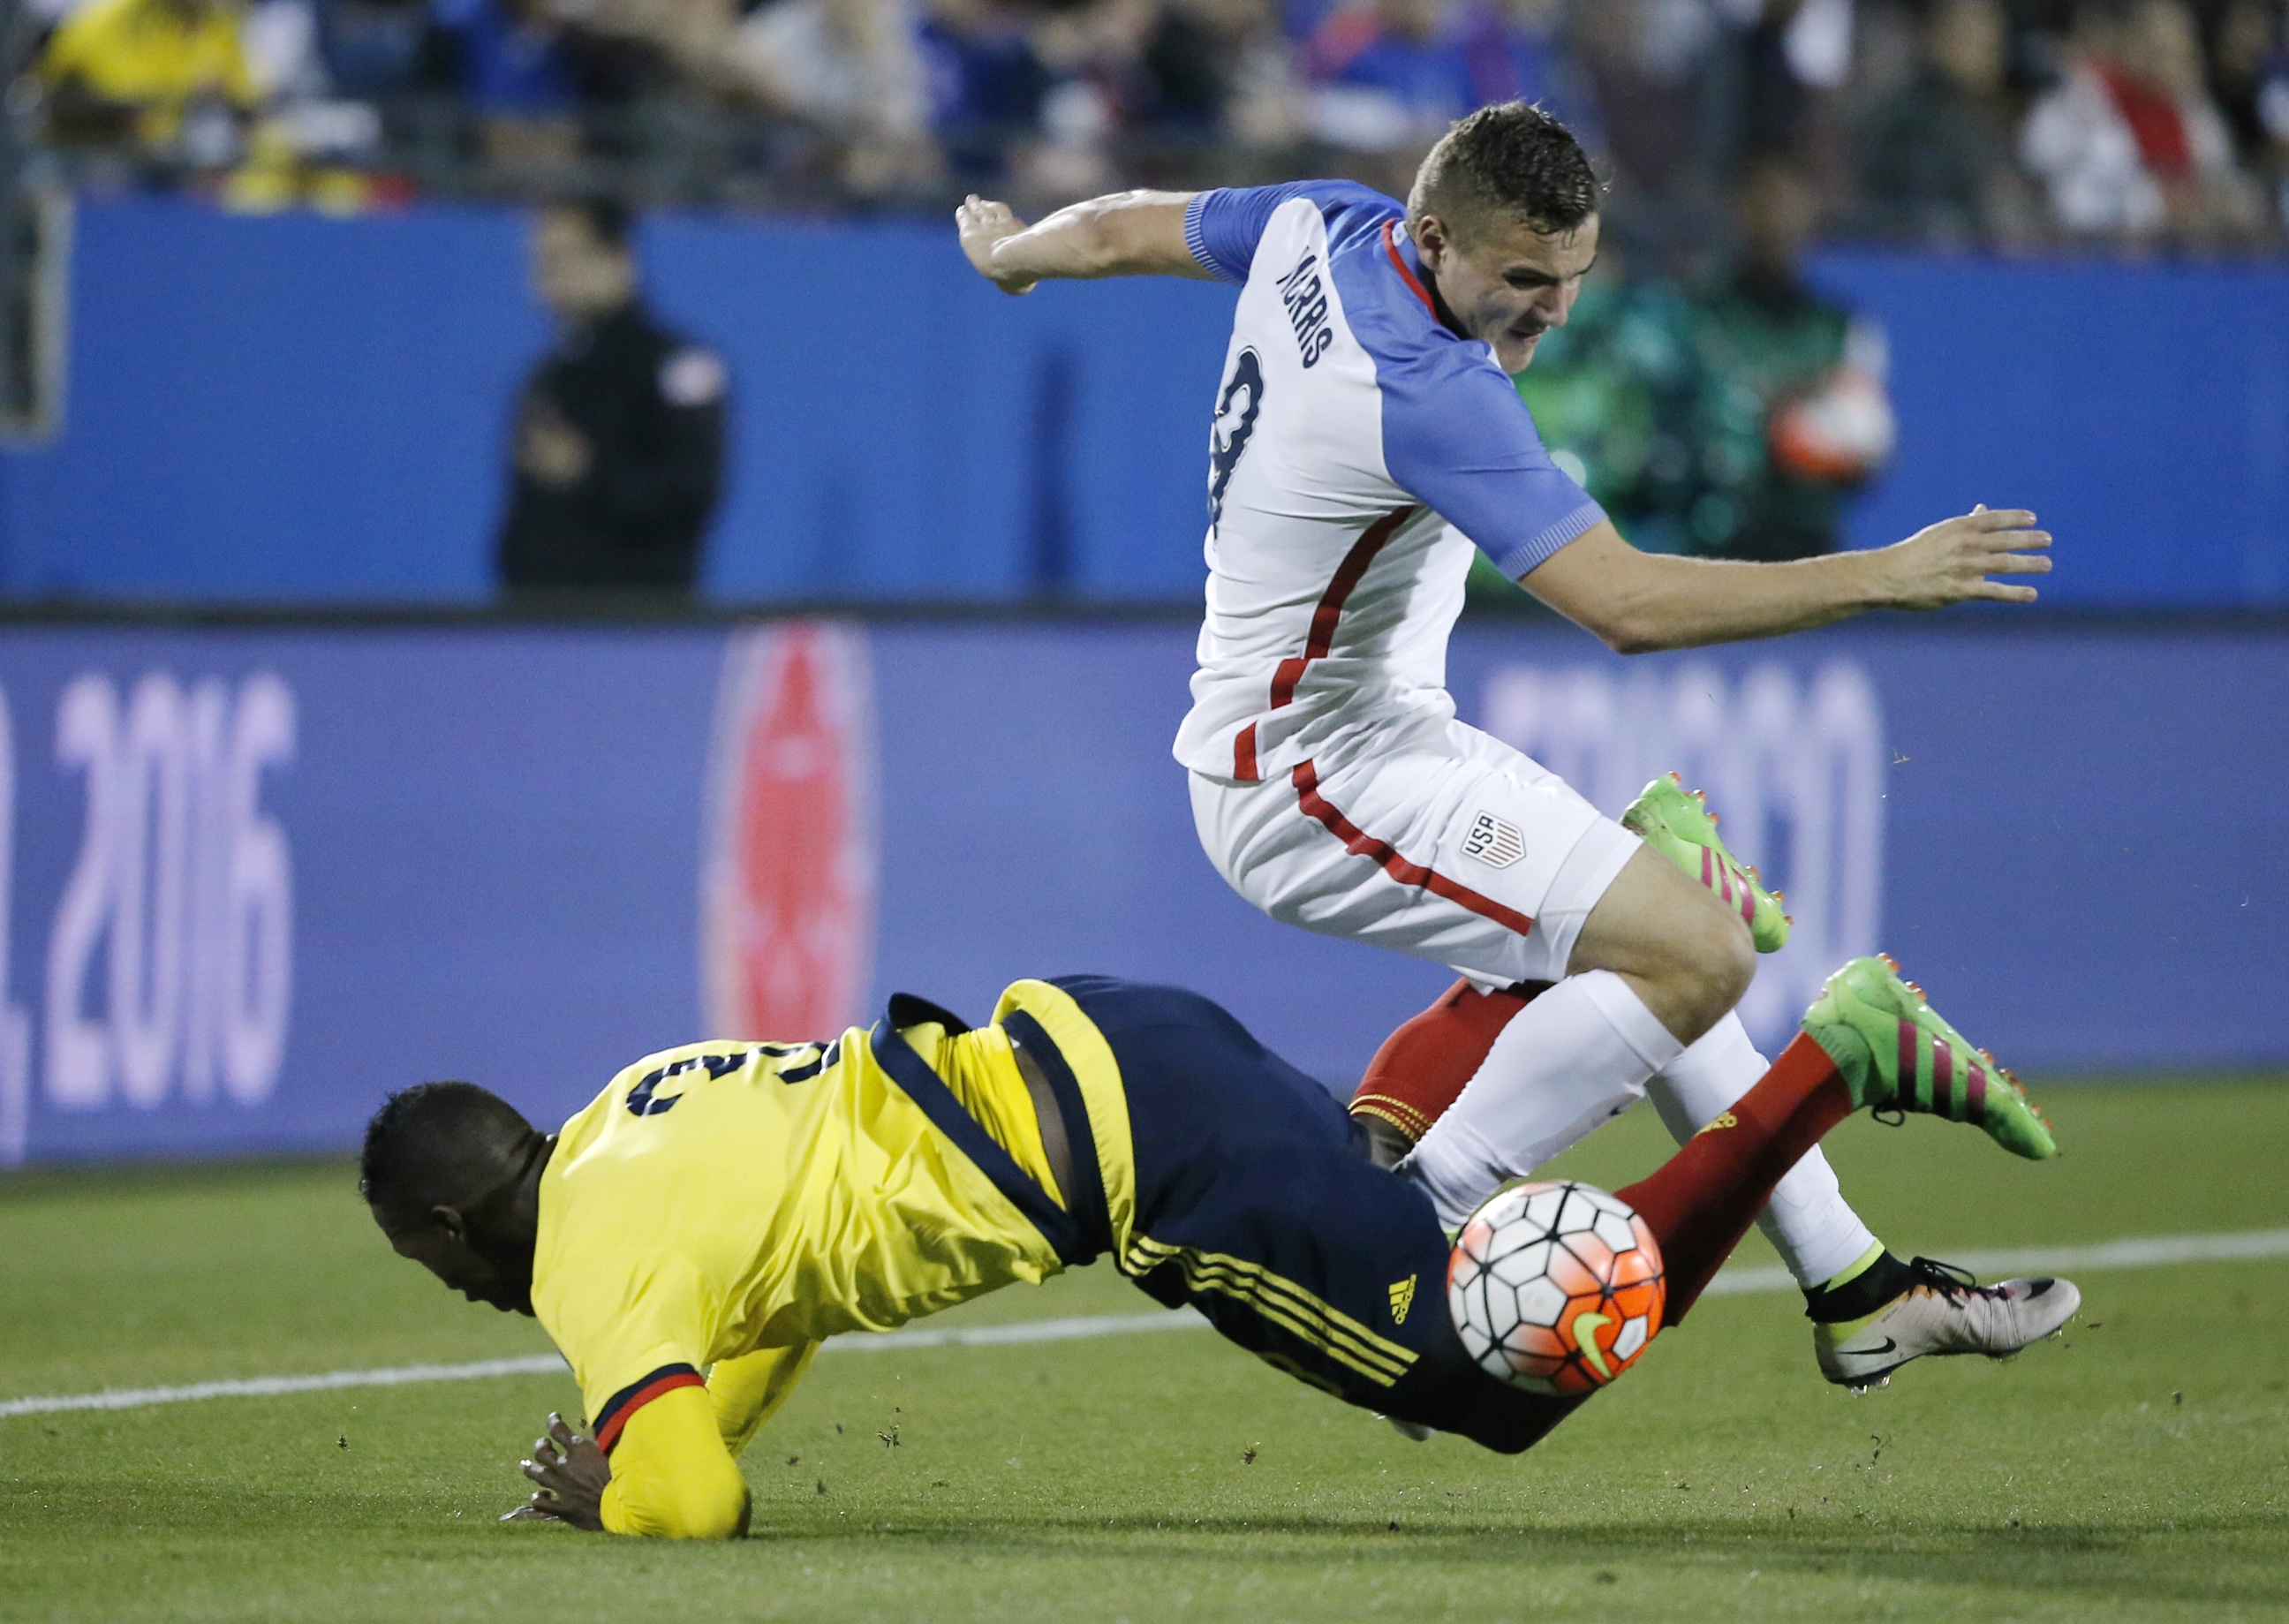 U.S. forward Jordan Morris (9) battles Colombia defender Yerry Mina (3) during the first half of an Olympic qualifying soccer match Tuesday, March 29, 2016, in Frisco, Texas. (AP Photo/Brandon Wade)